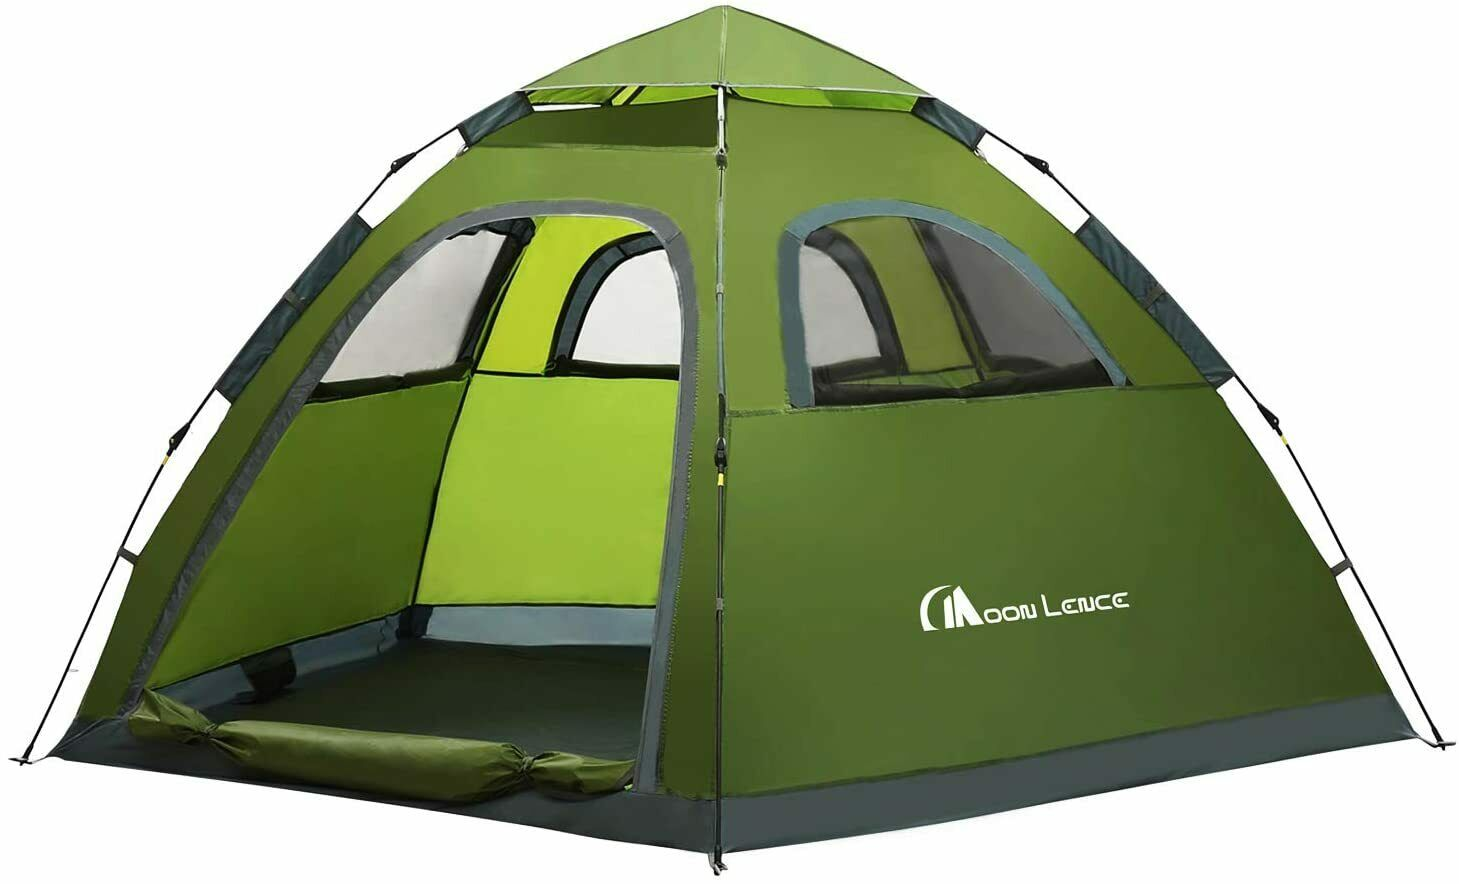 MOON LENCE Instant Pop Up Tent Family Camping Tent 4-5 Person Portable Tent Auto